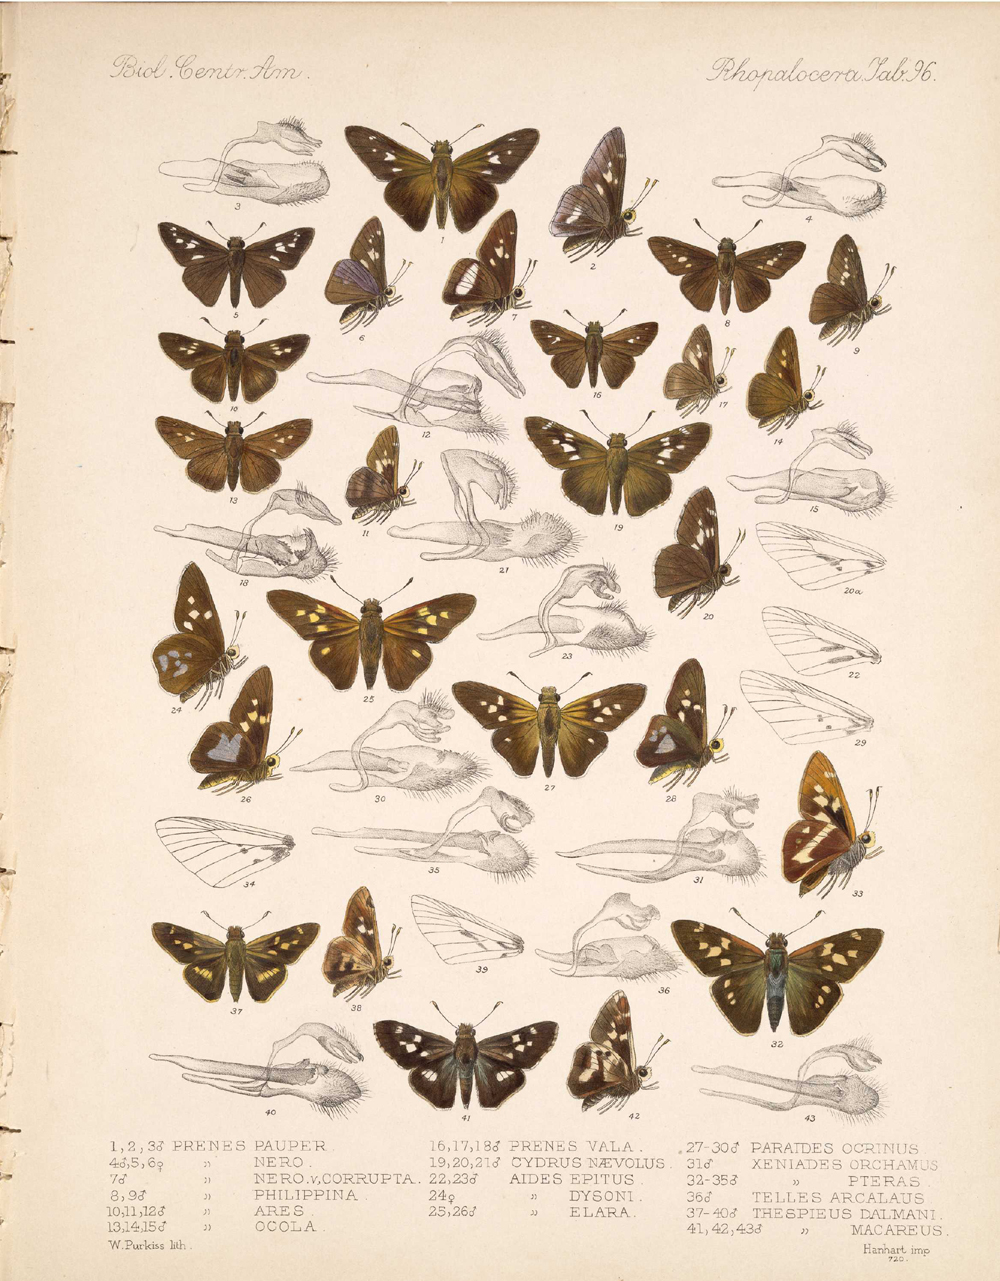 Butterflies and Moths,  Image number:bca_14_03_00_107